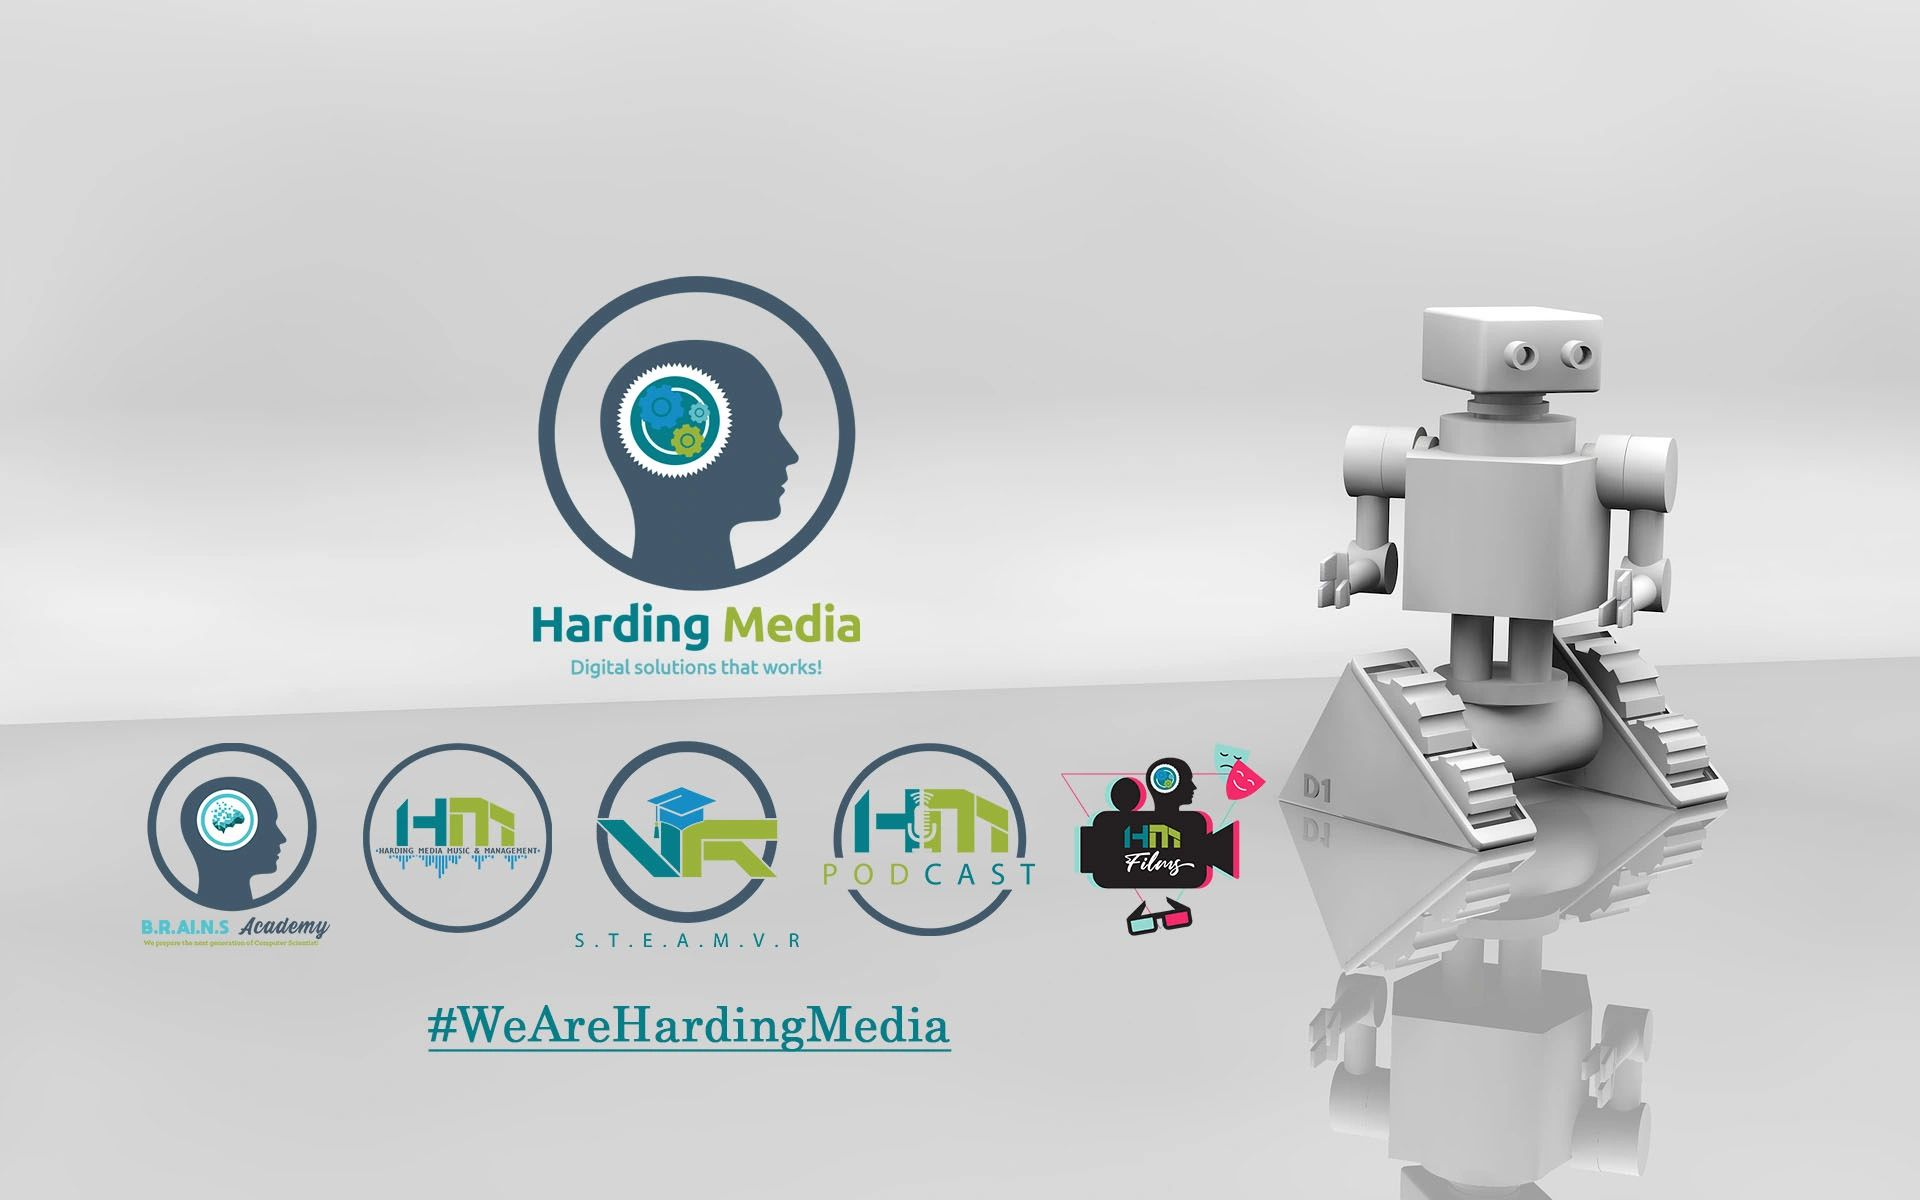 All Harding Media logos with a D2 silver Robot